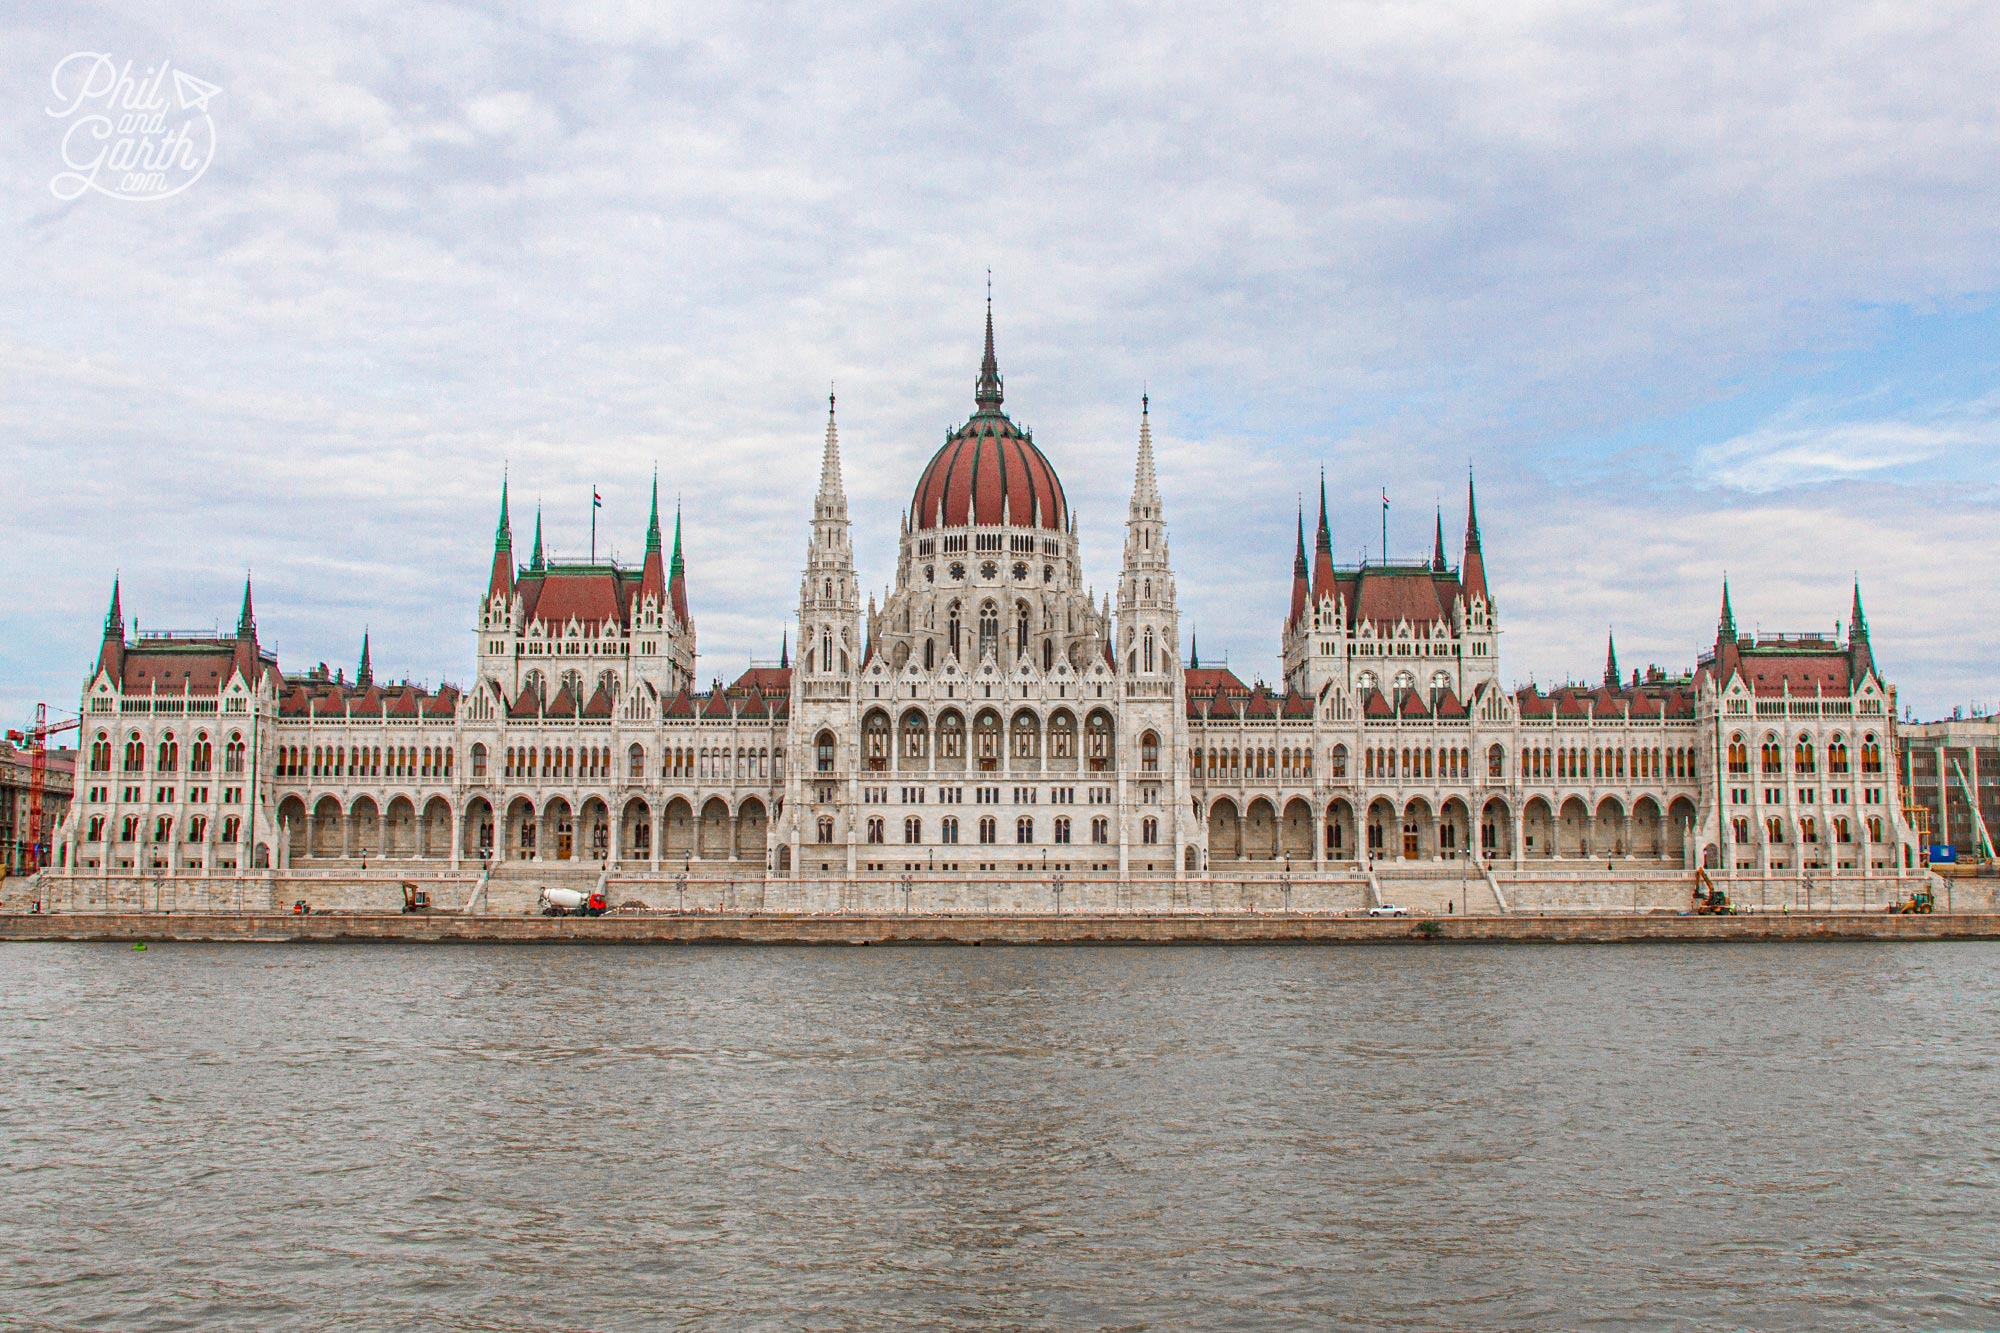 The Hungarian Parliament Building is best viewed head on from the River Danube